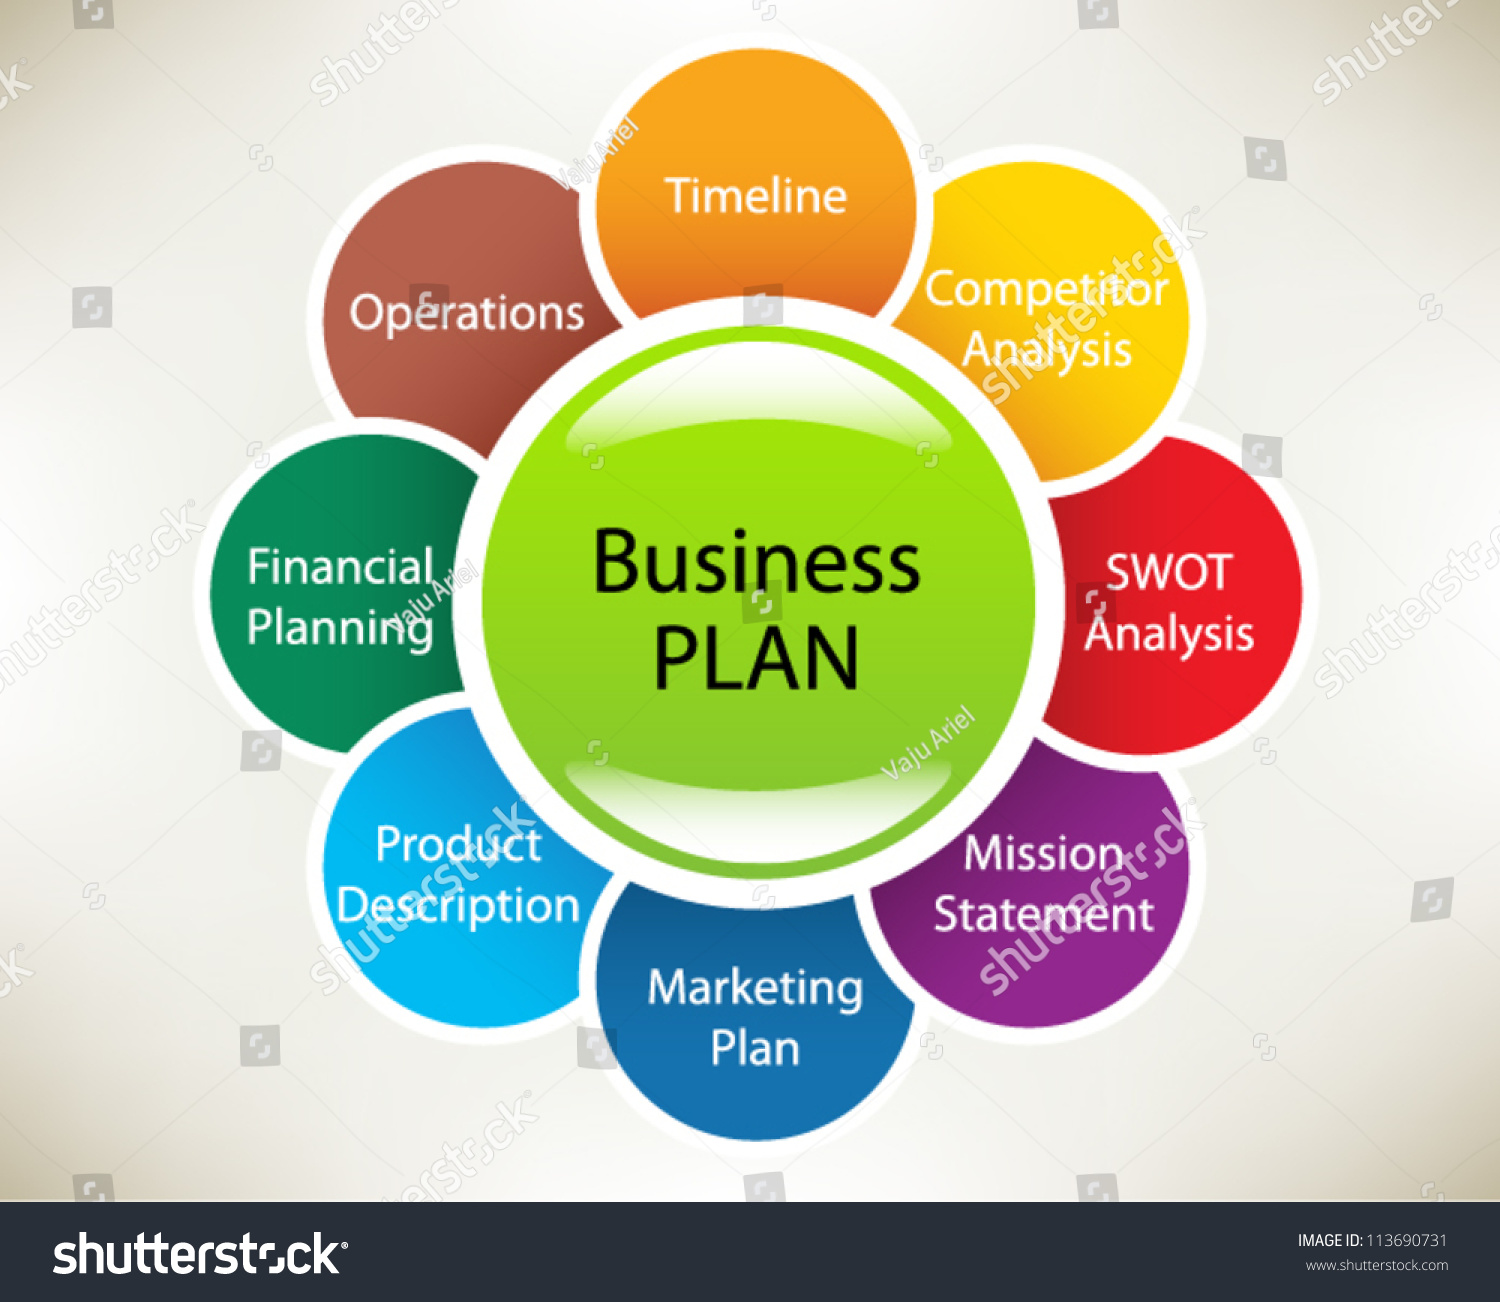 Business plan in a sphere timeline operations financial planning